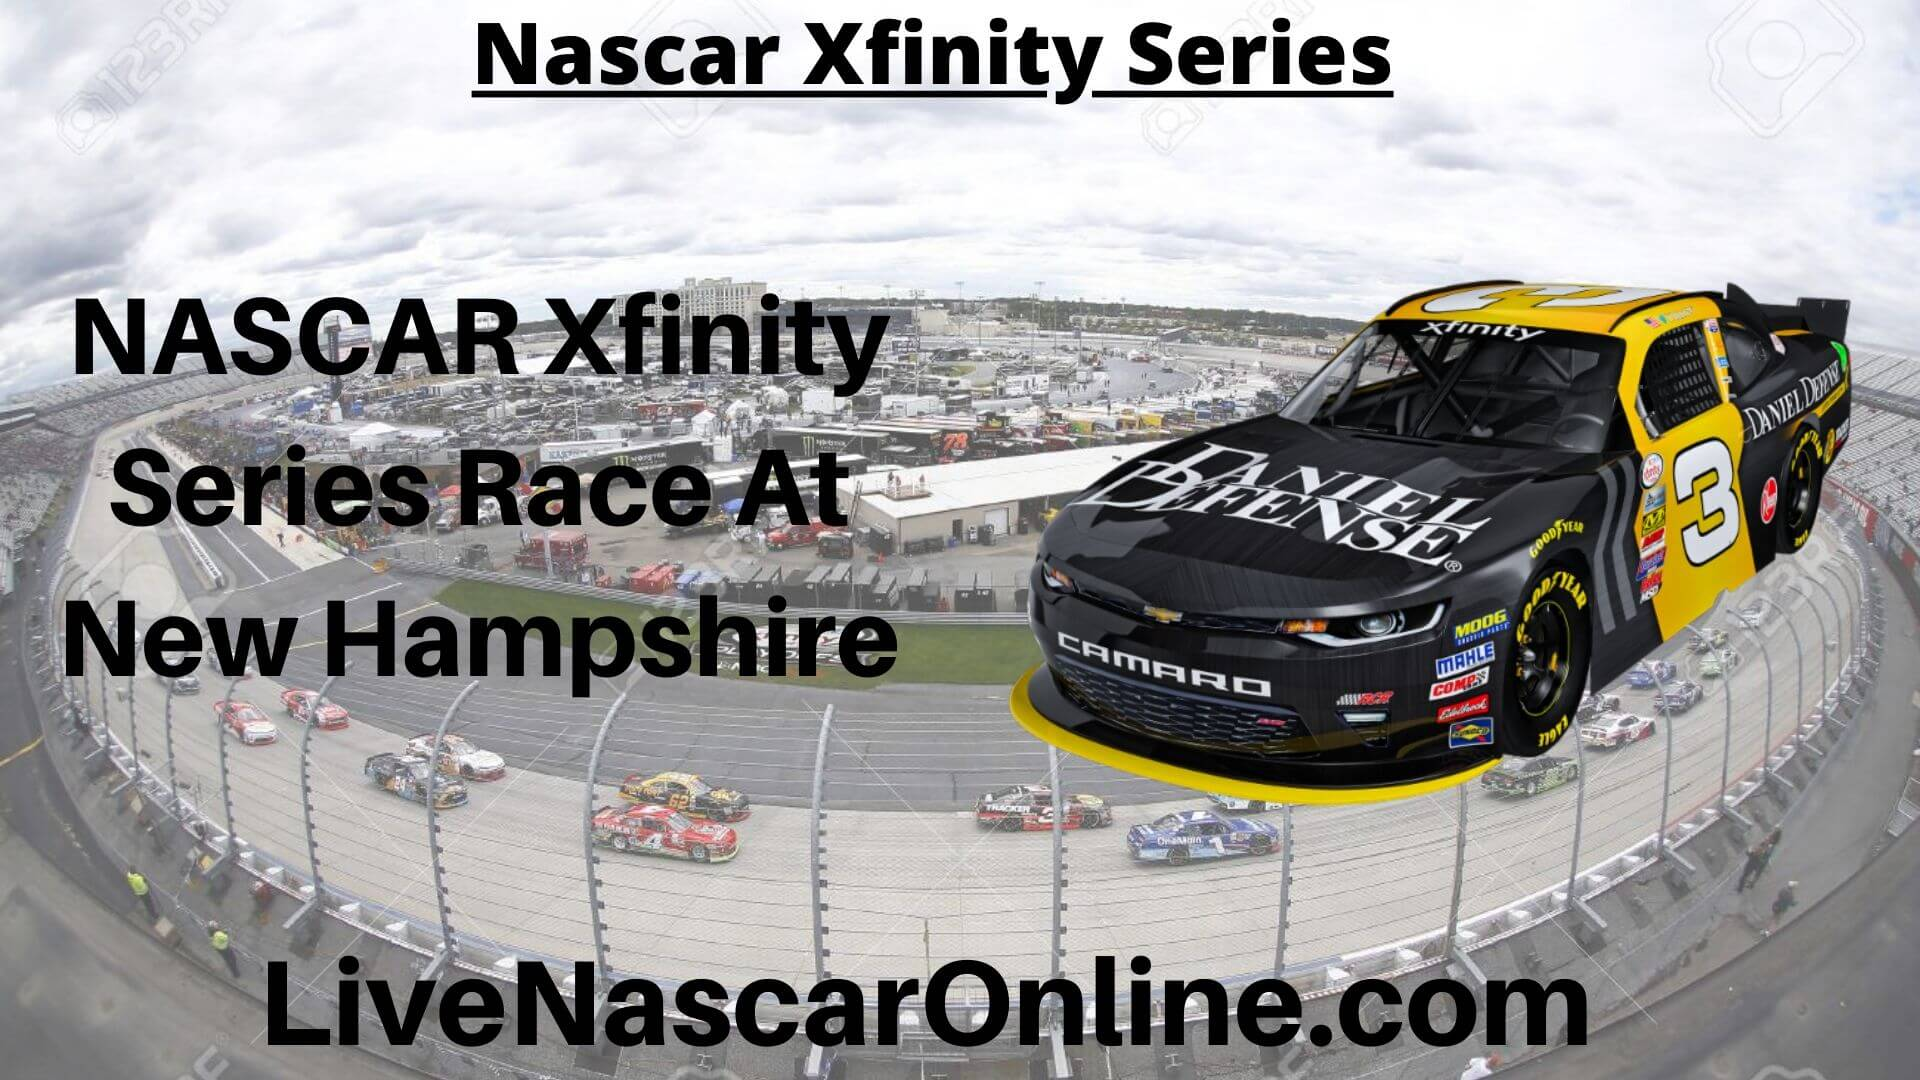 NASCAR Xfinity Series Online Stream | NASCAR New Hampshire 2020